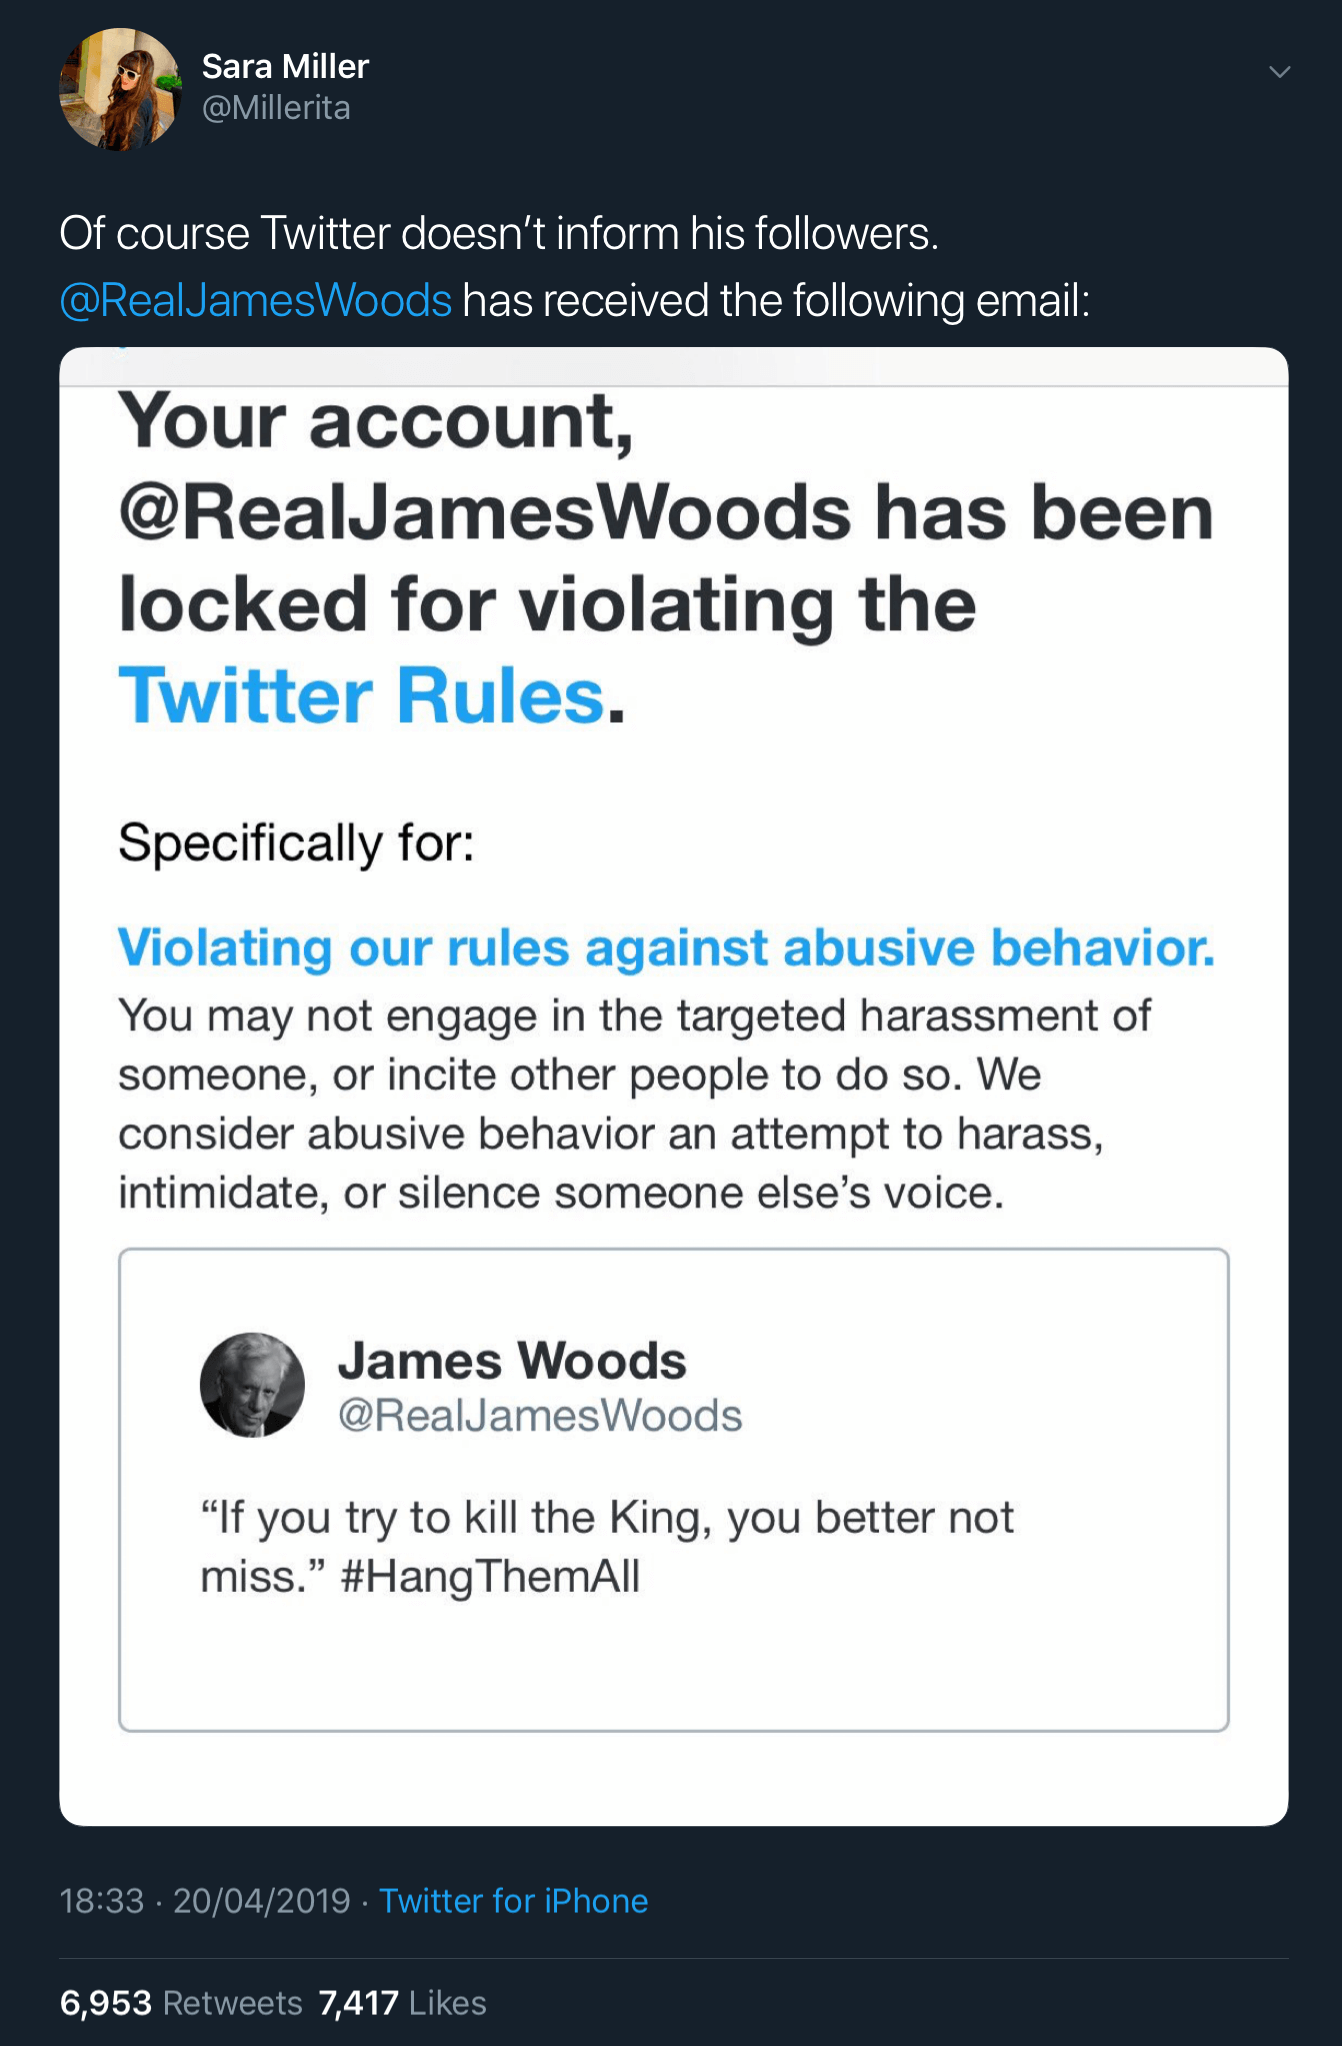 James Woods' girlfriend Sara Miller announcing that he's been locked out of his Twitter account.